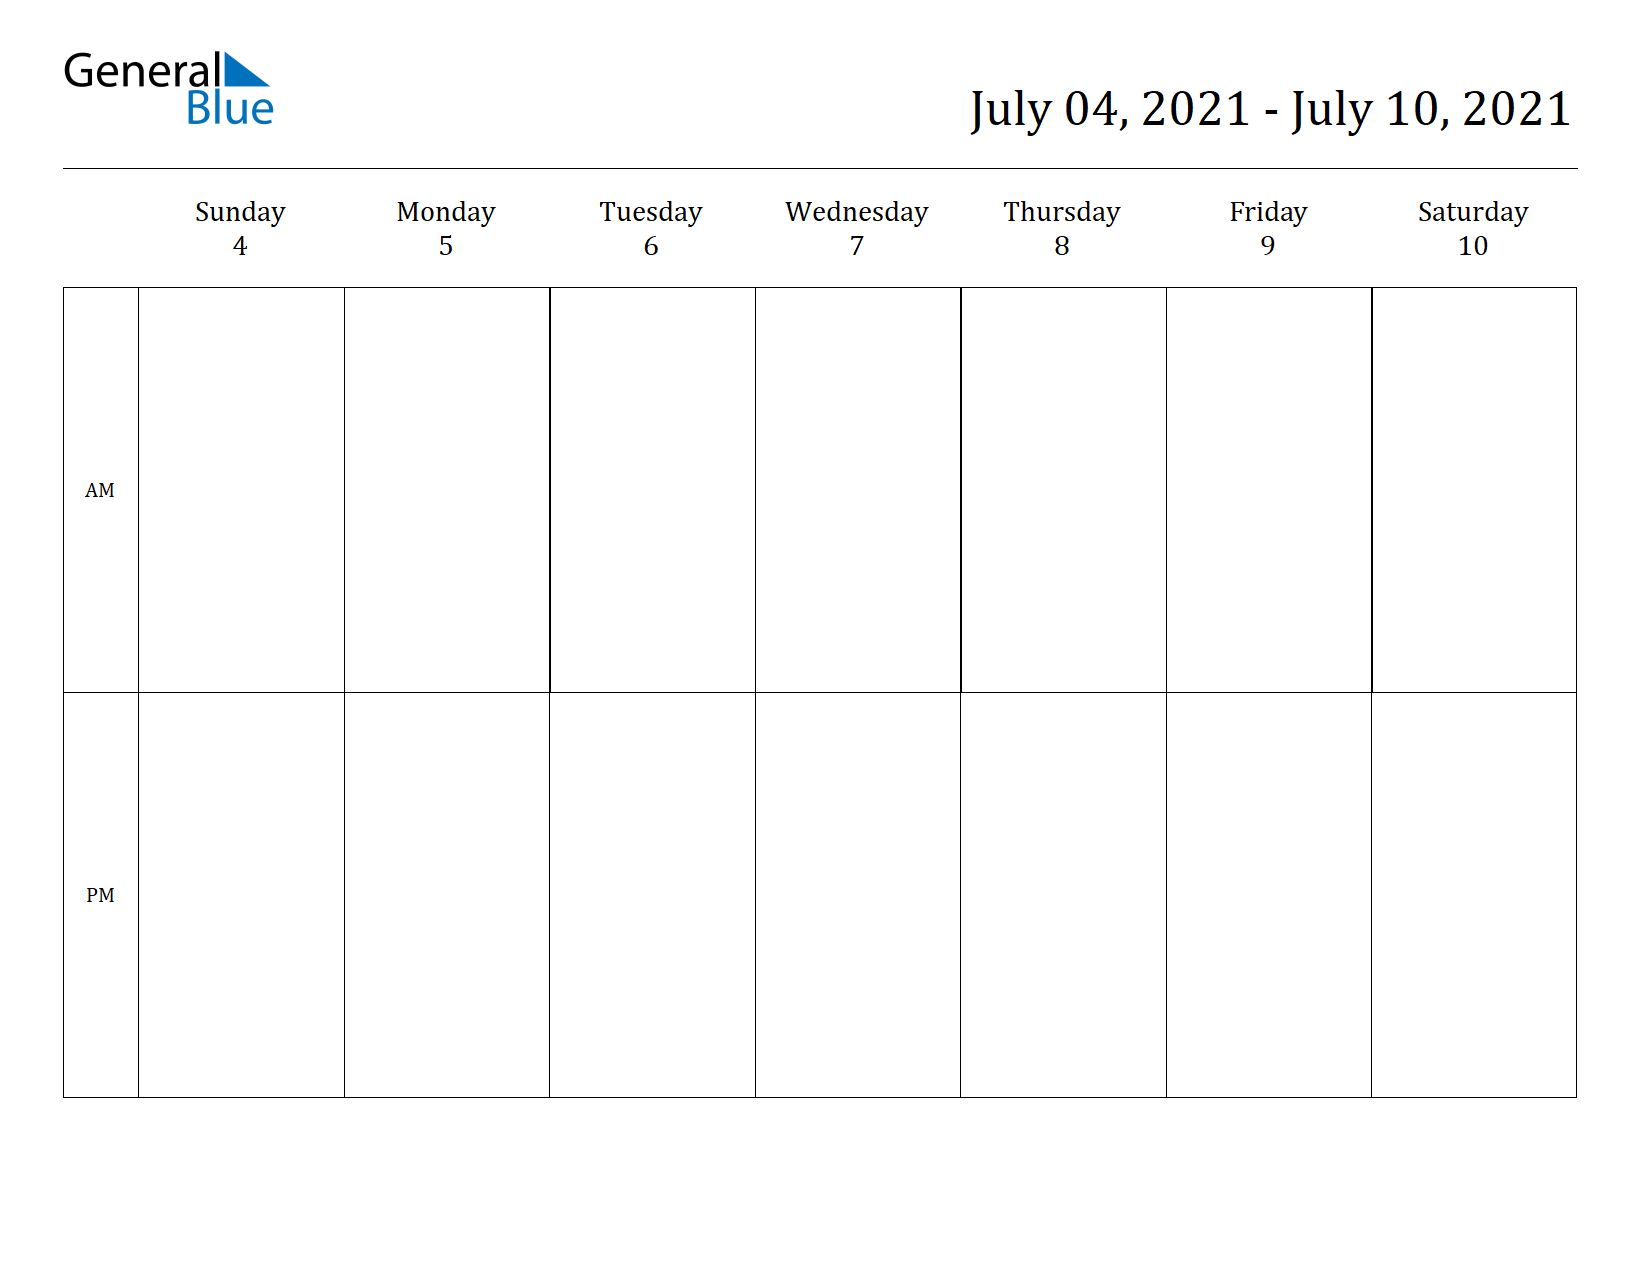 Weekly Calendar for Jul 04, 2021 to Jul 10, 2021